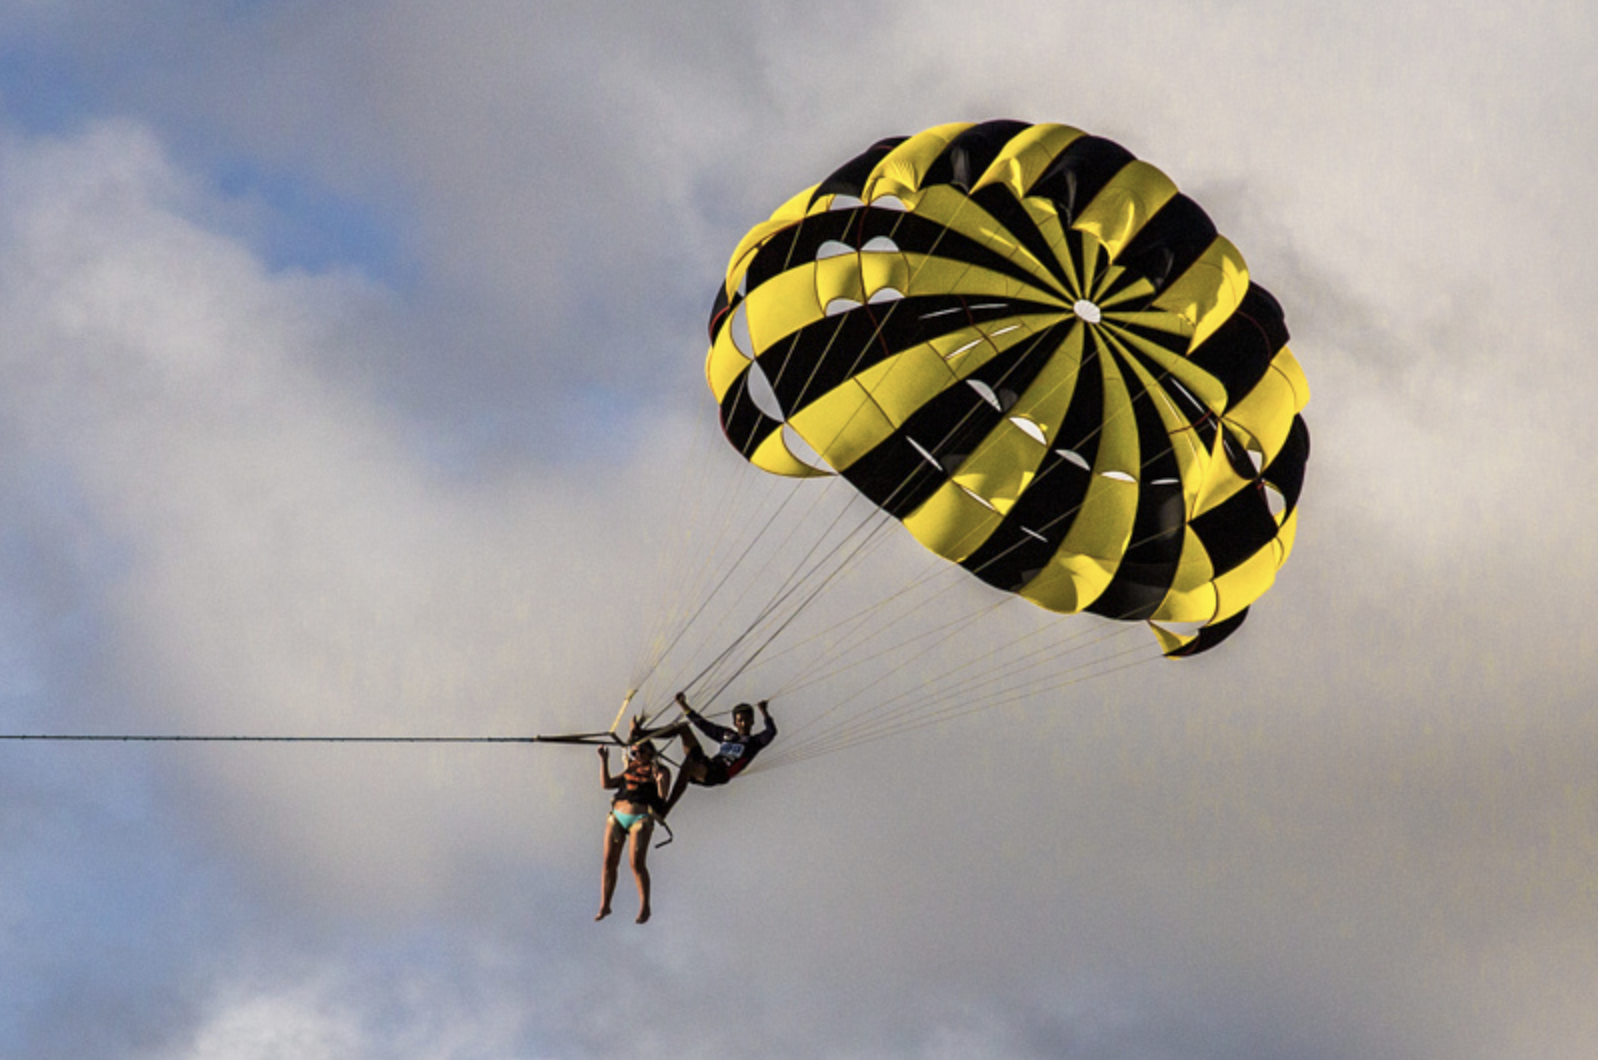 It always amazes me when the 'helper' for this parasailor just hangs on no matter how high they go.